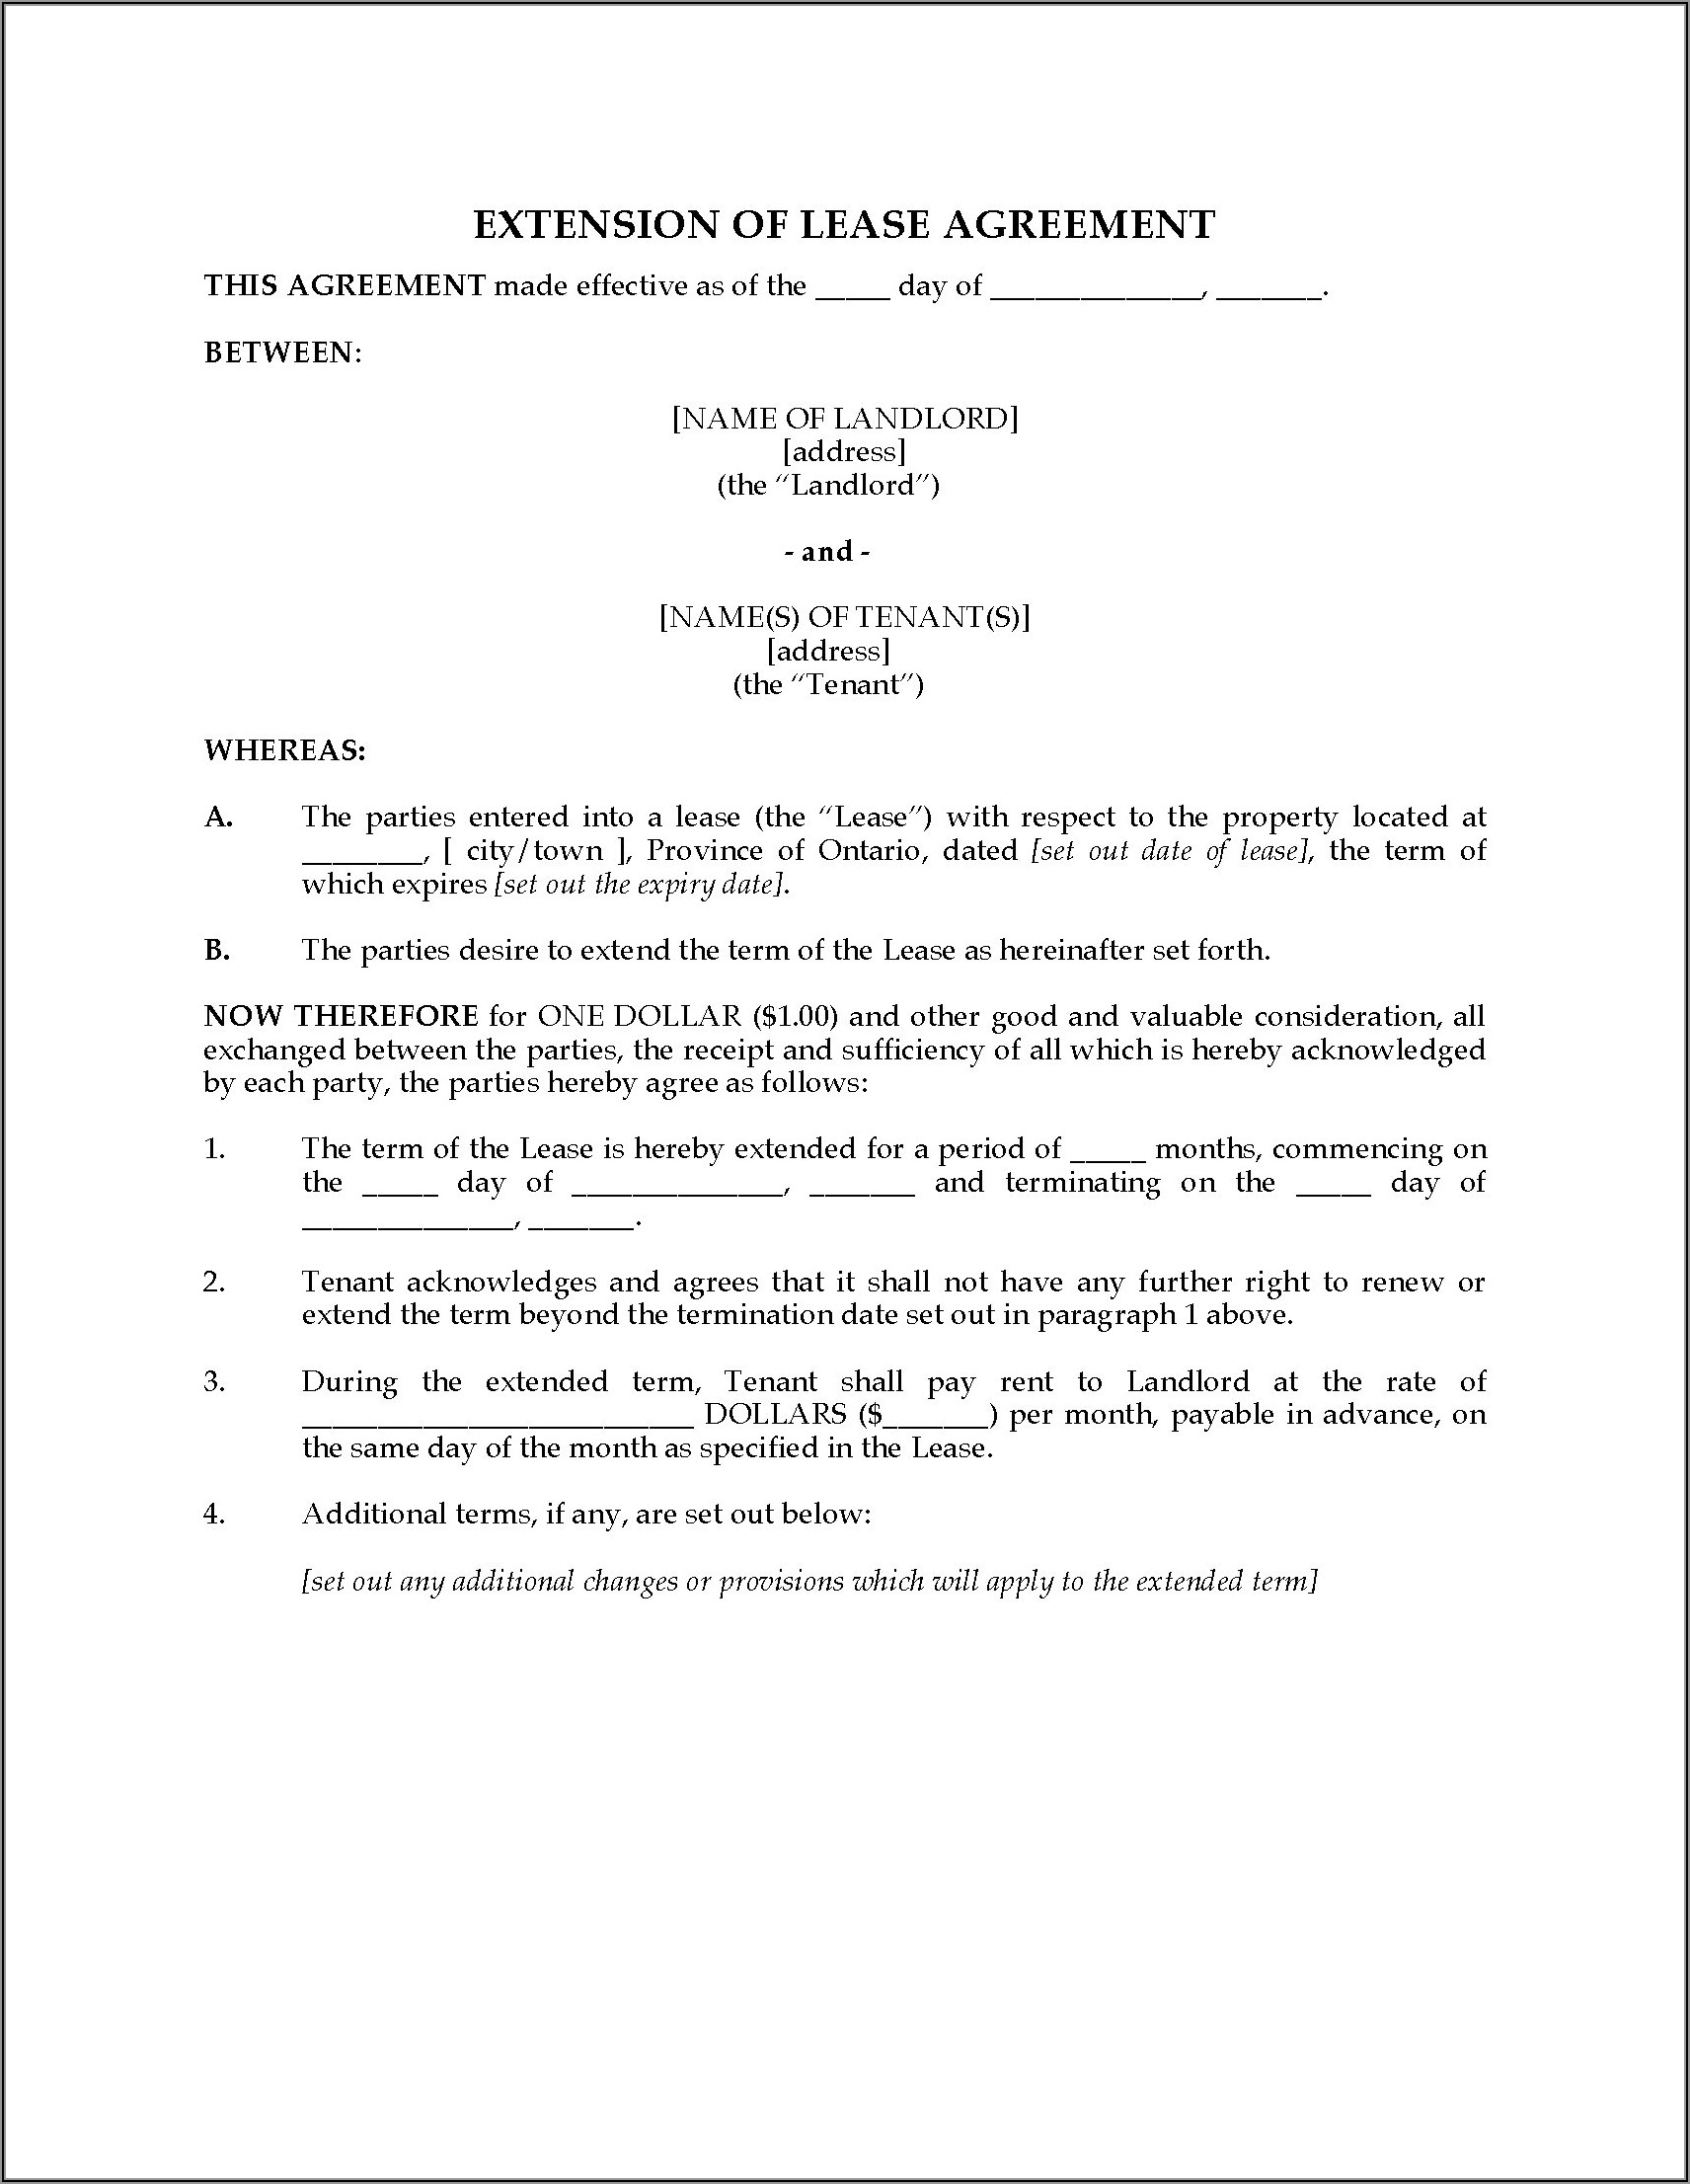 Lease Agreement Extension Format India